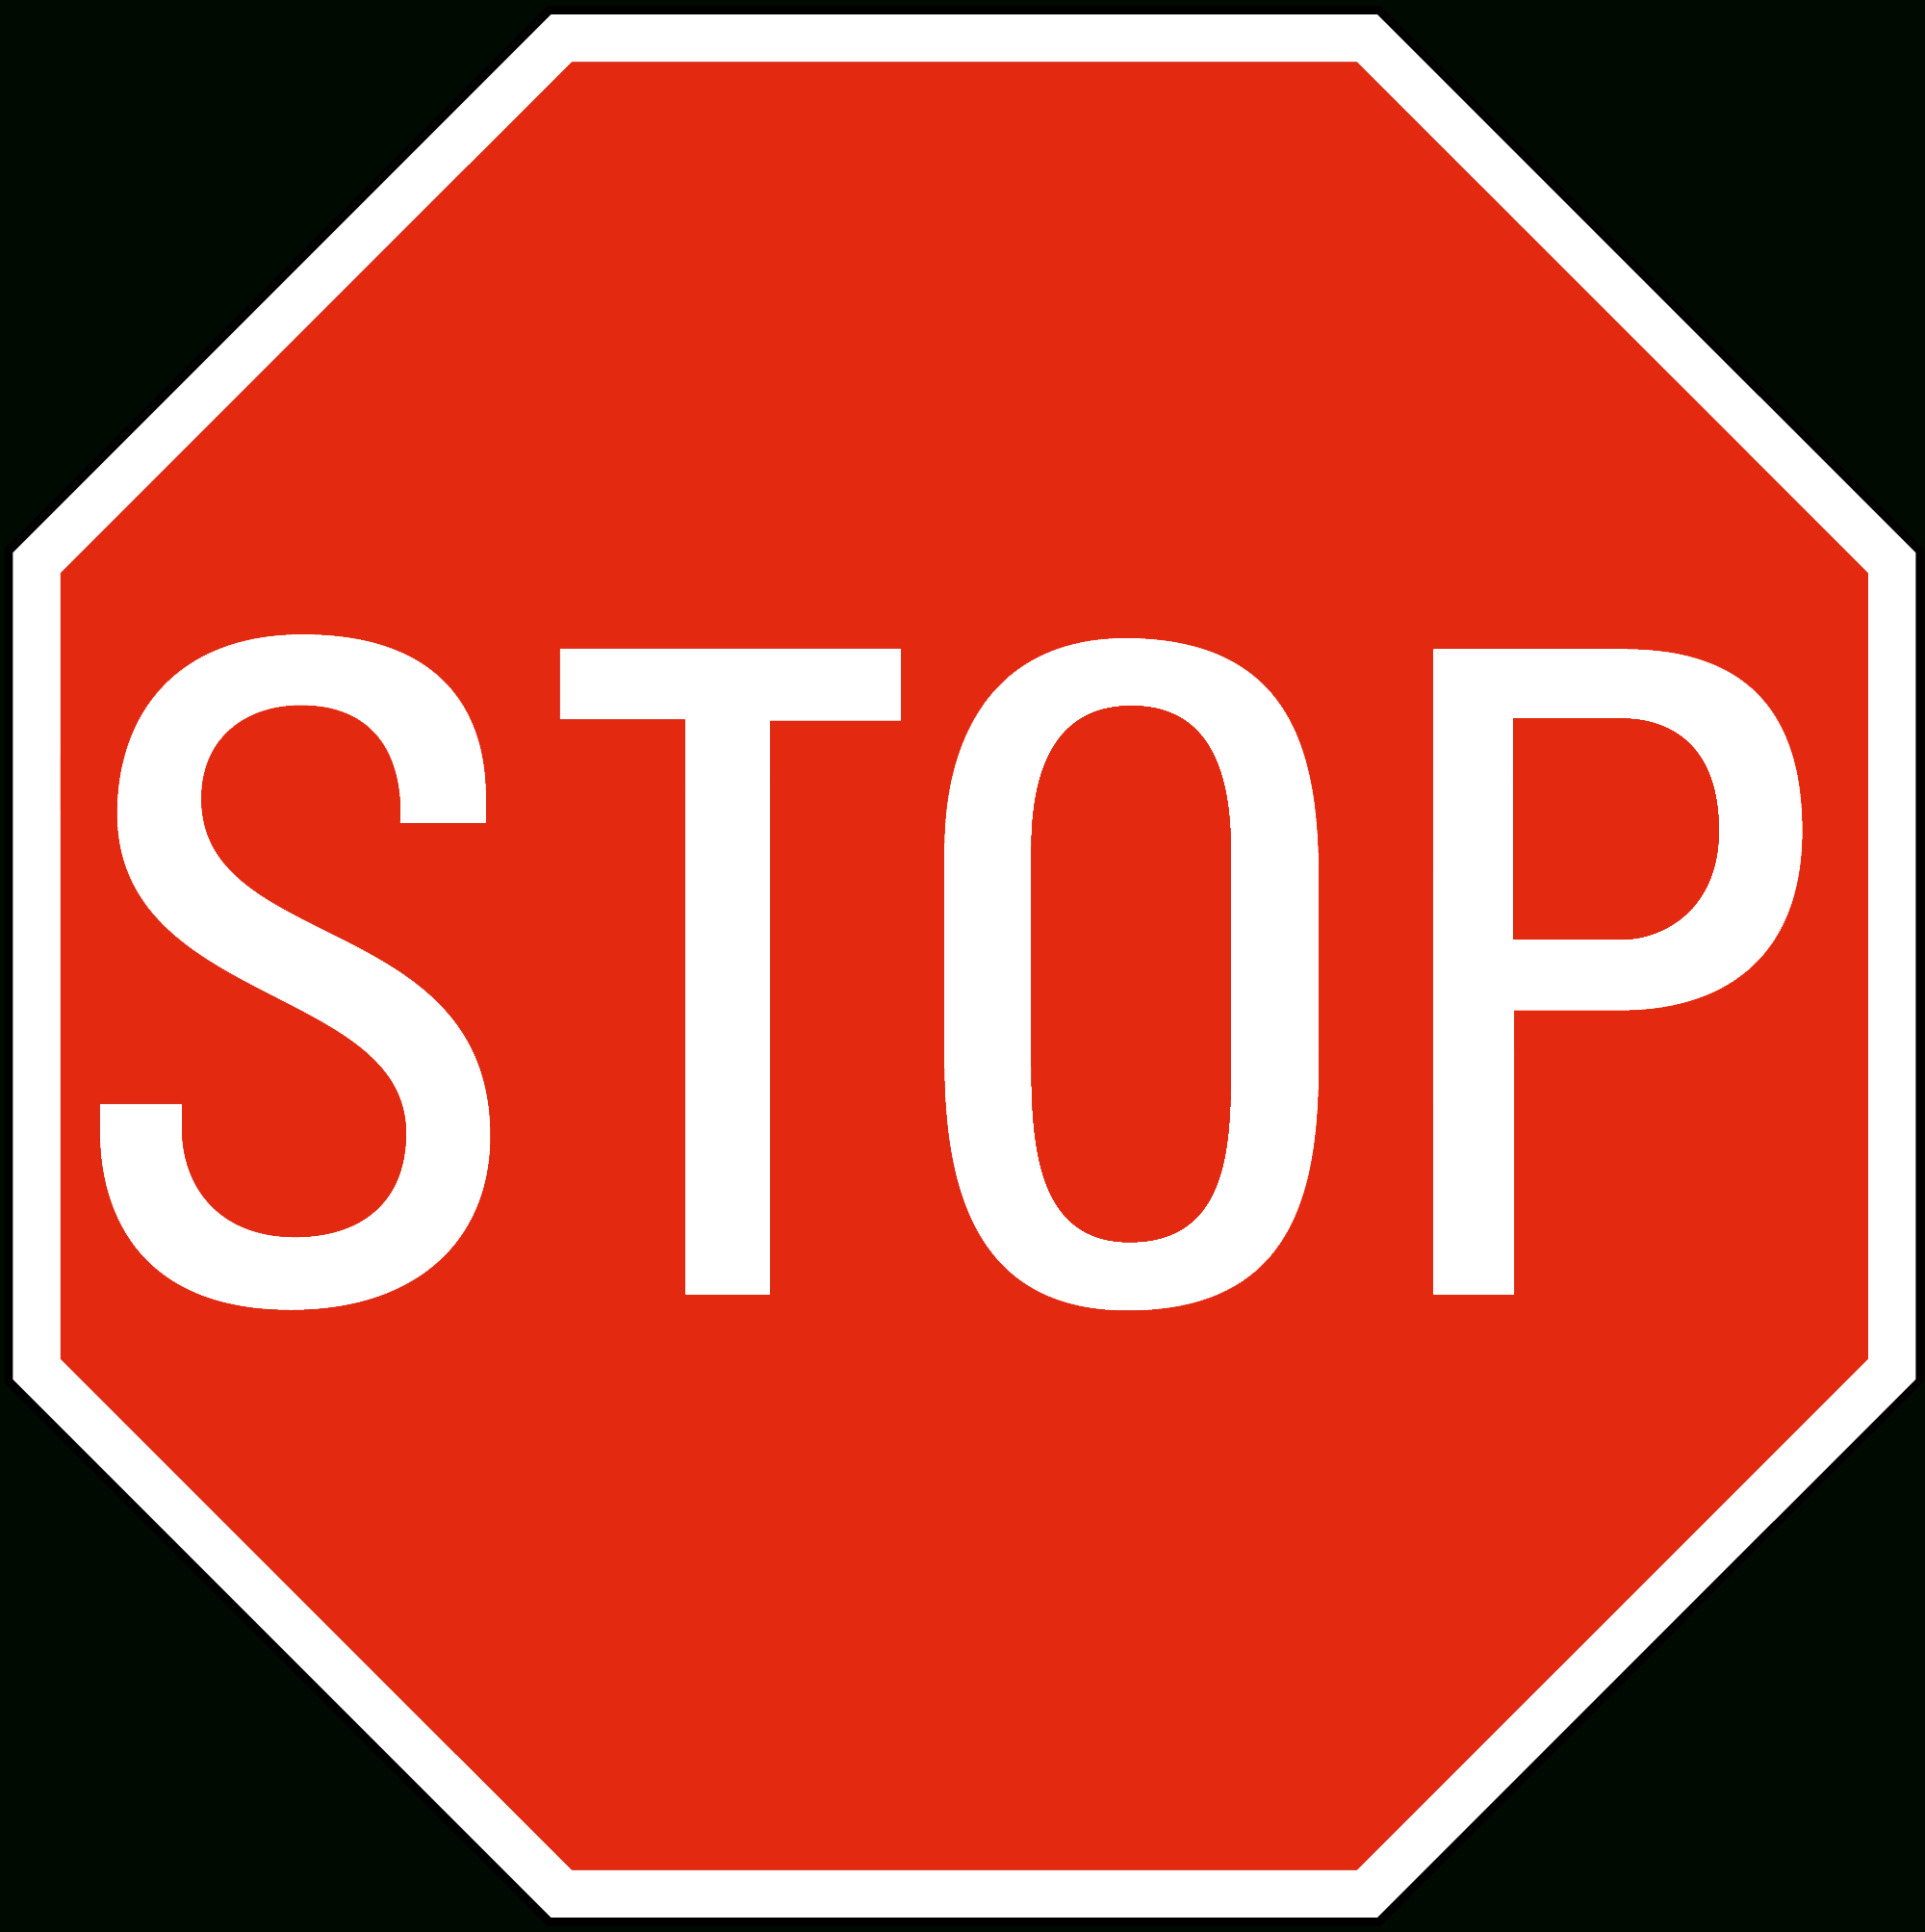 Free Printable Stop Signs, Download Free Clip Art, Free Clip Art On - Free Printable Stop Sign To Color